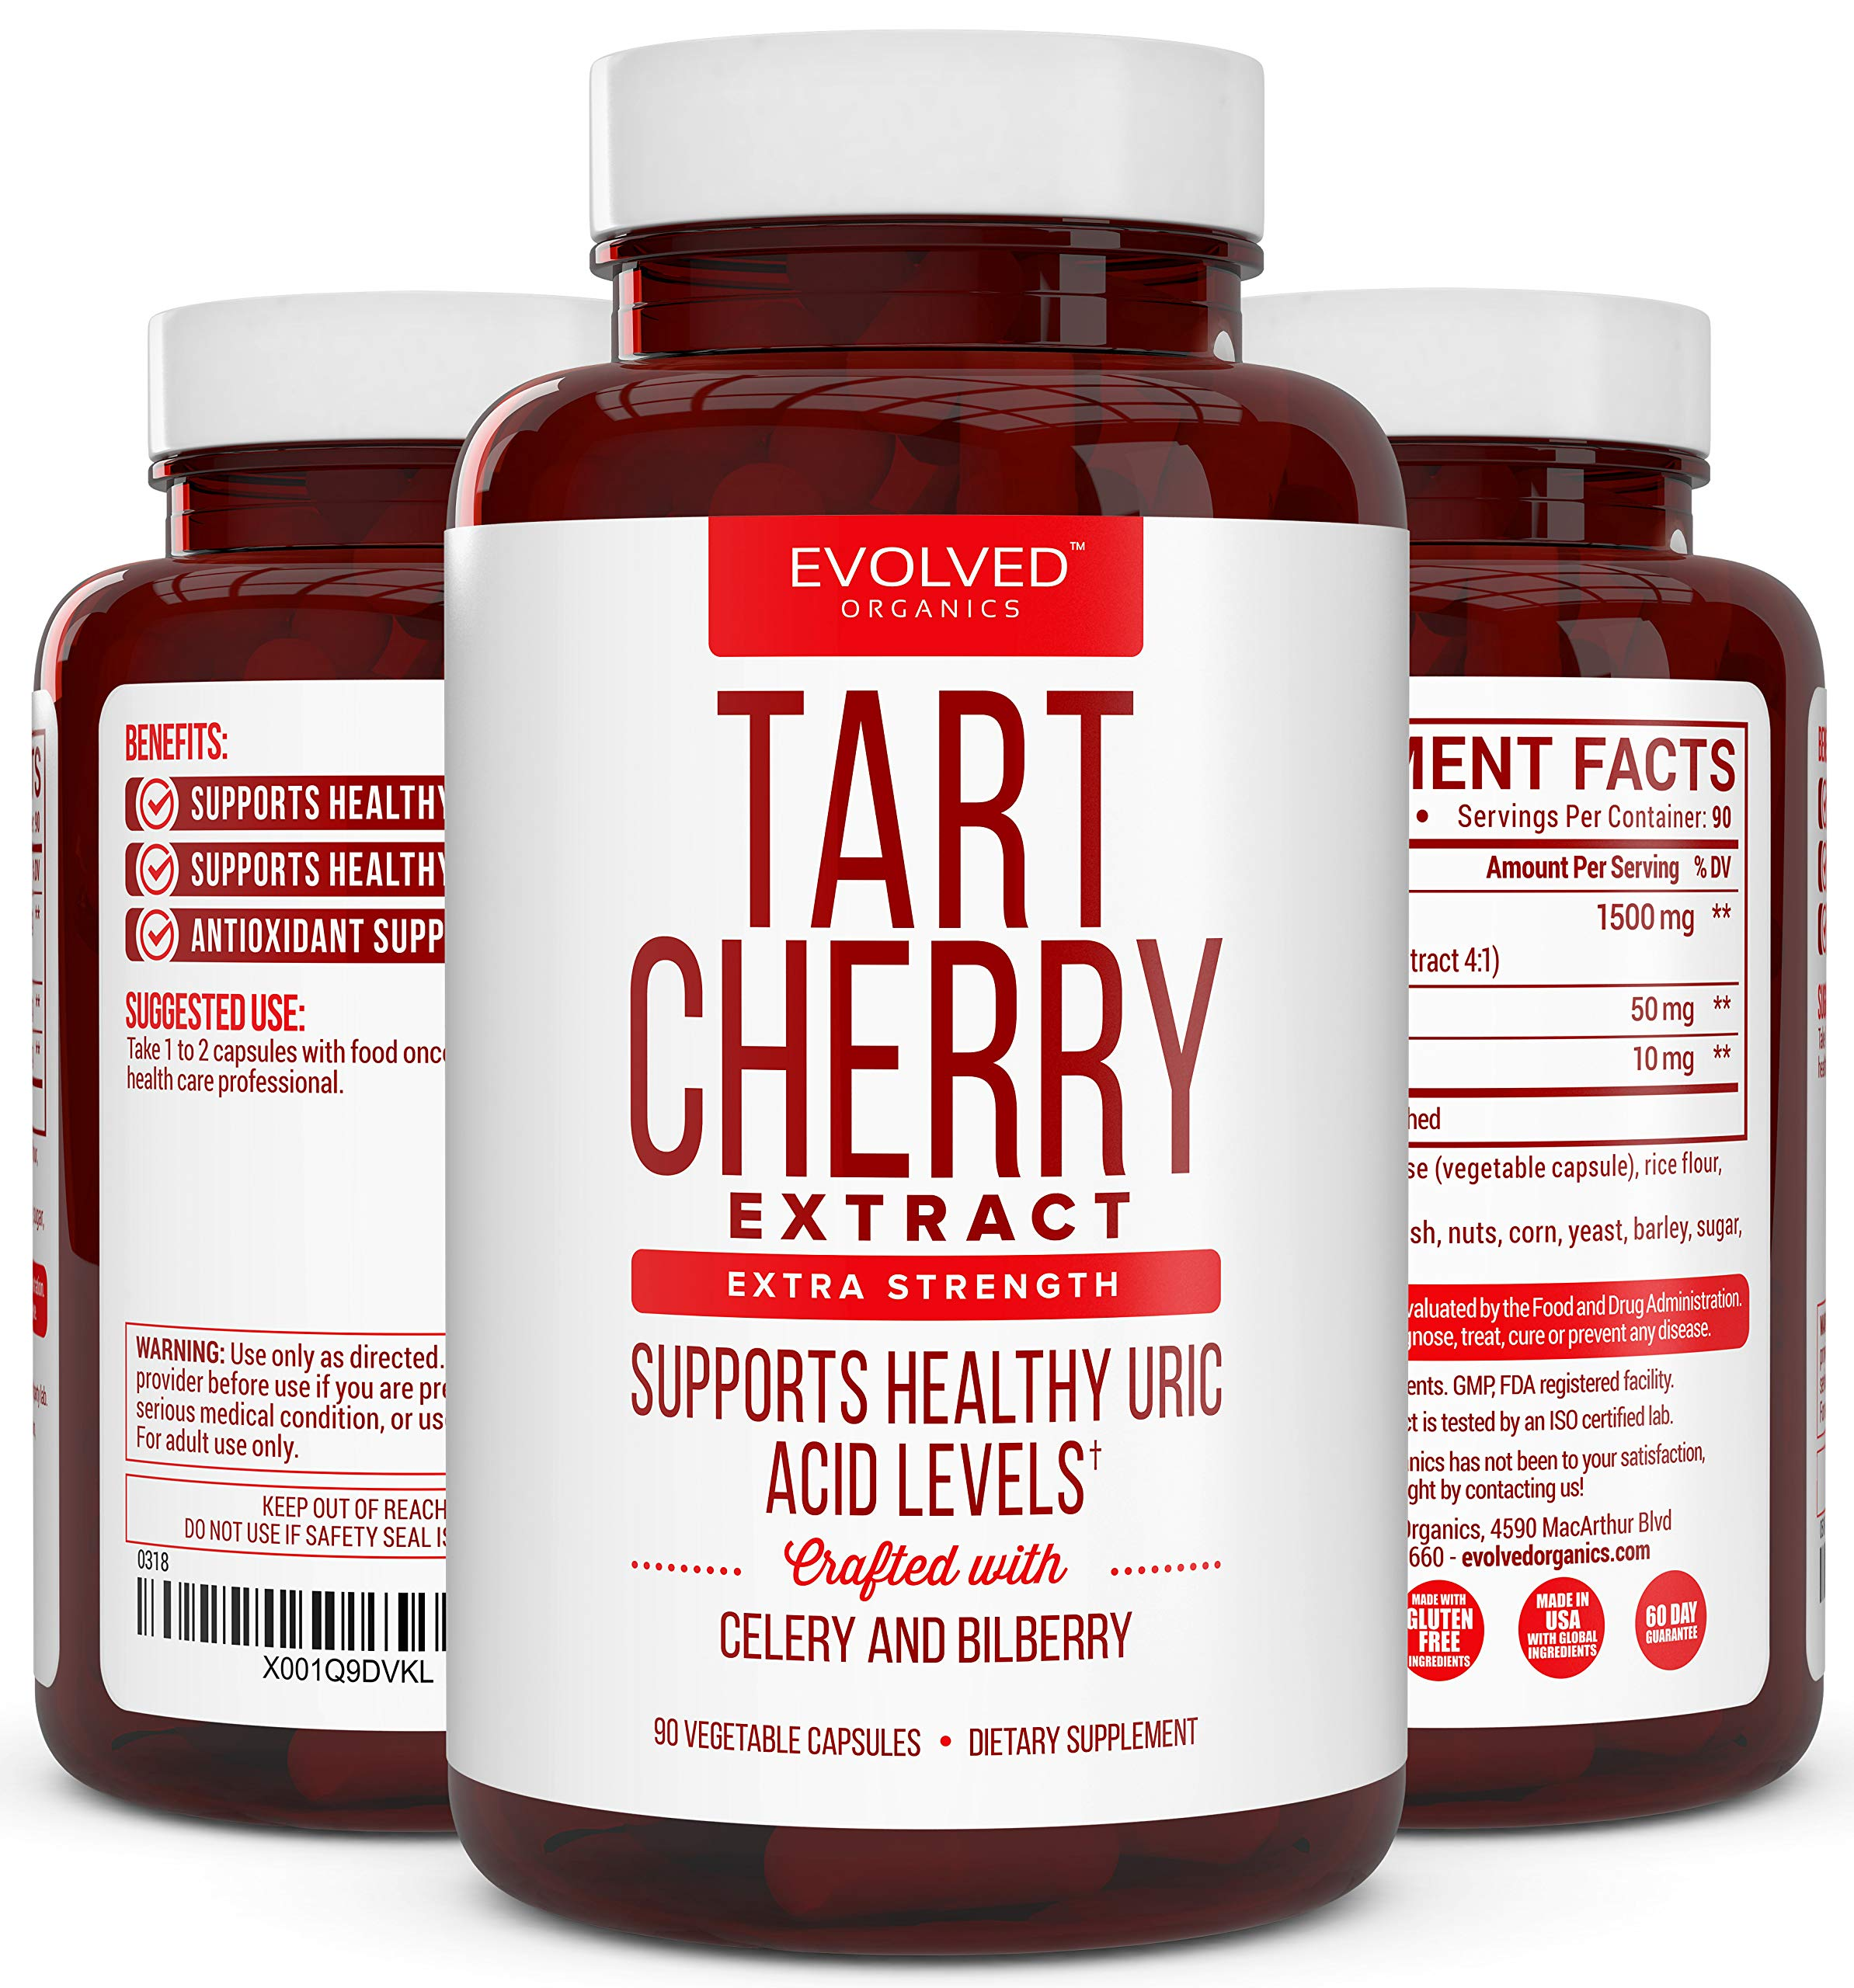 Extra Strength Tart Cherry Extract 1500mg Plus Celery Seed and Bilberry Extract -Anti Inflammatory, Antioxidant Supplement, Uric Acid Support, Muscle Recovery and Joint Pain -90 Veggie Capsules​